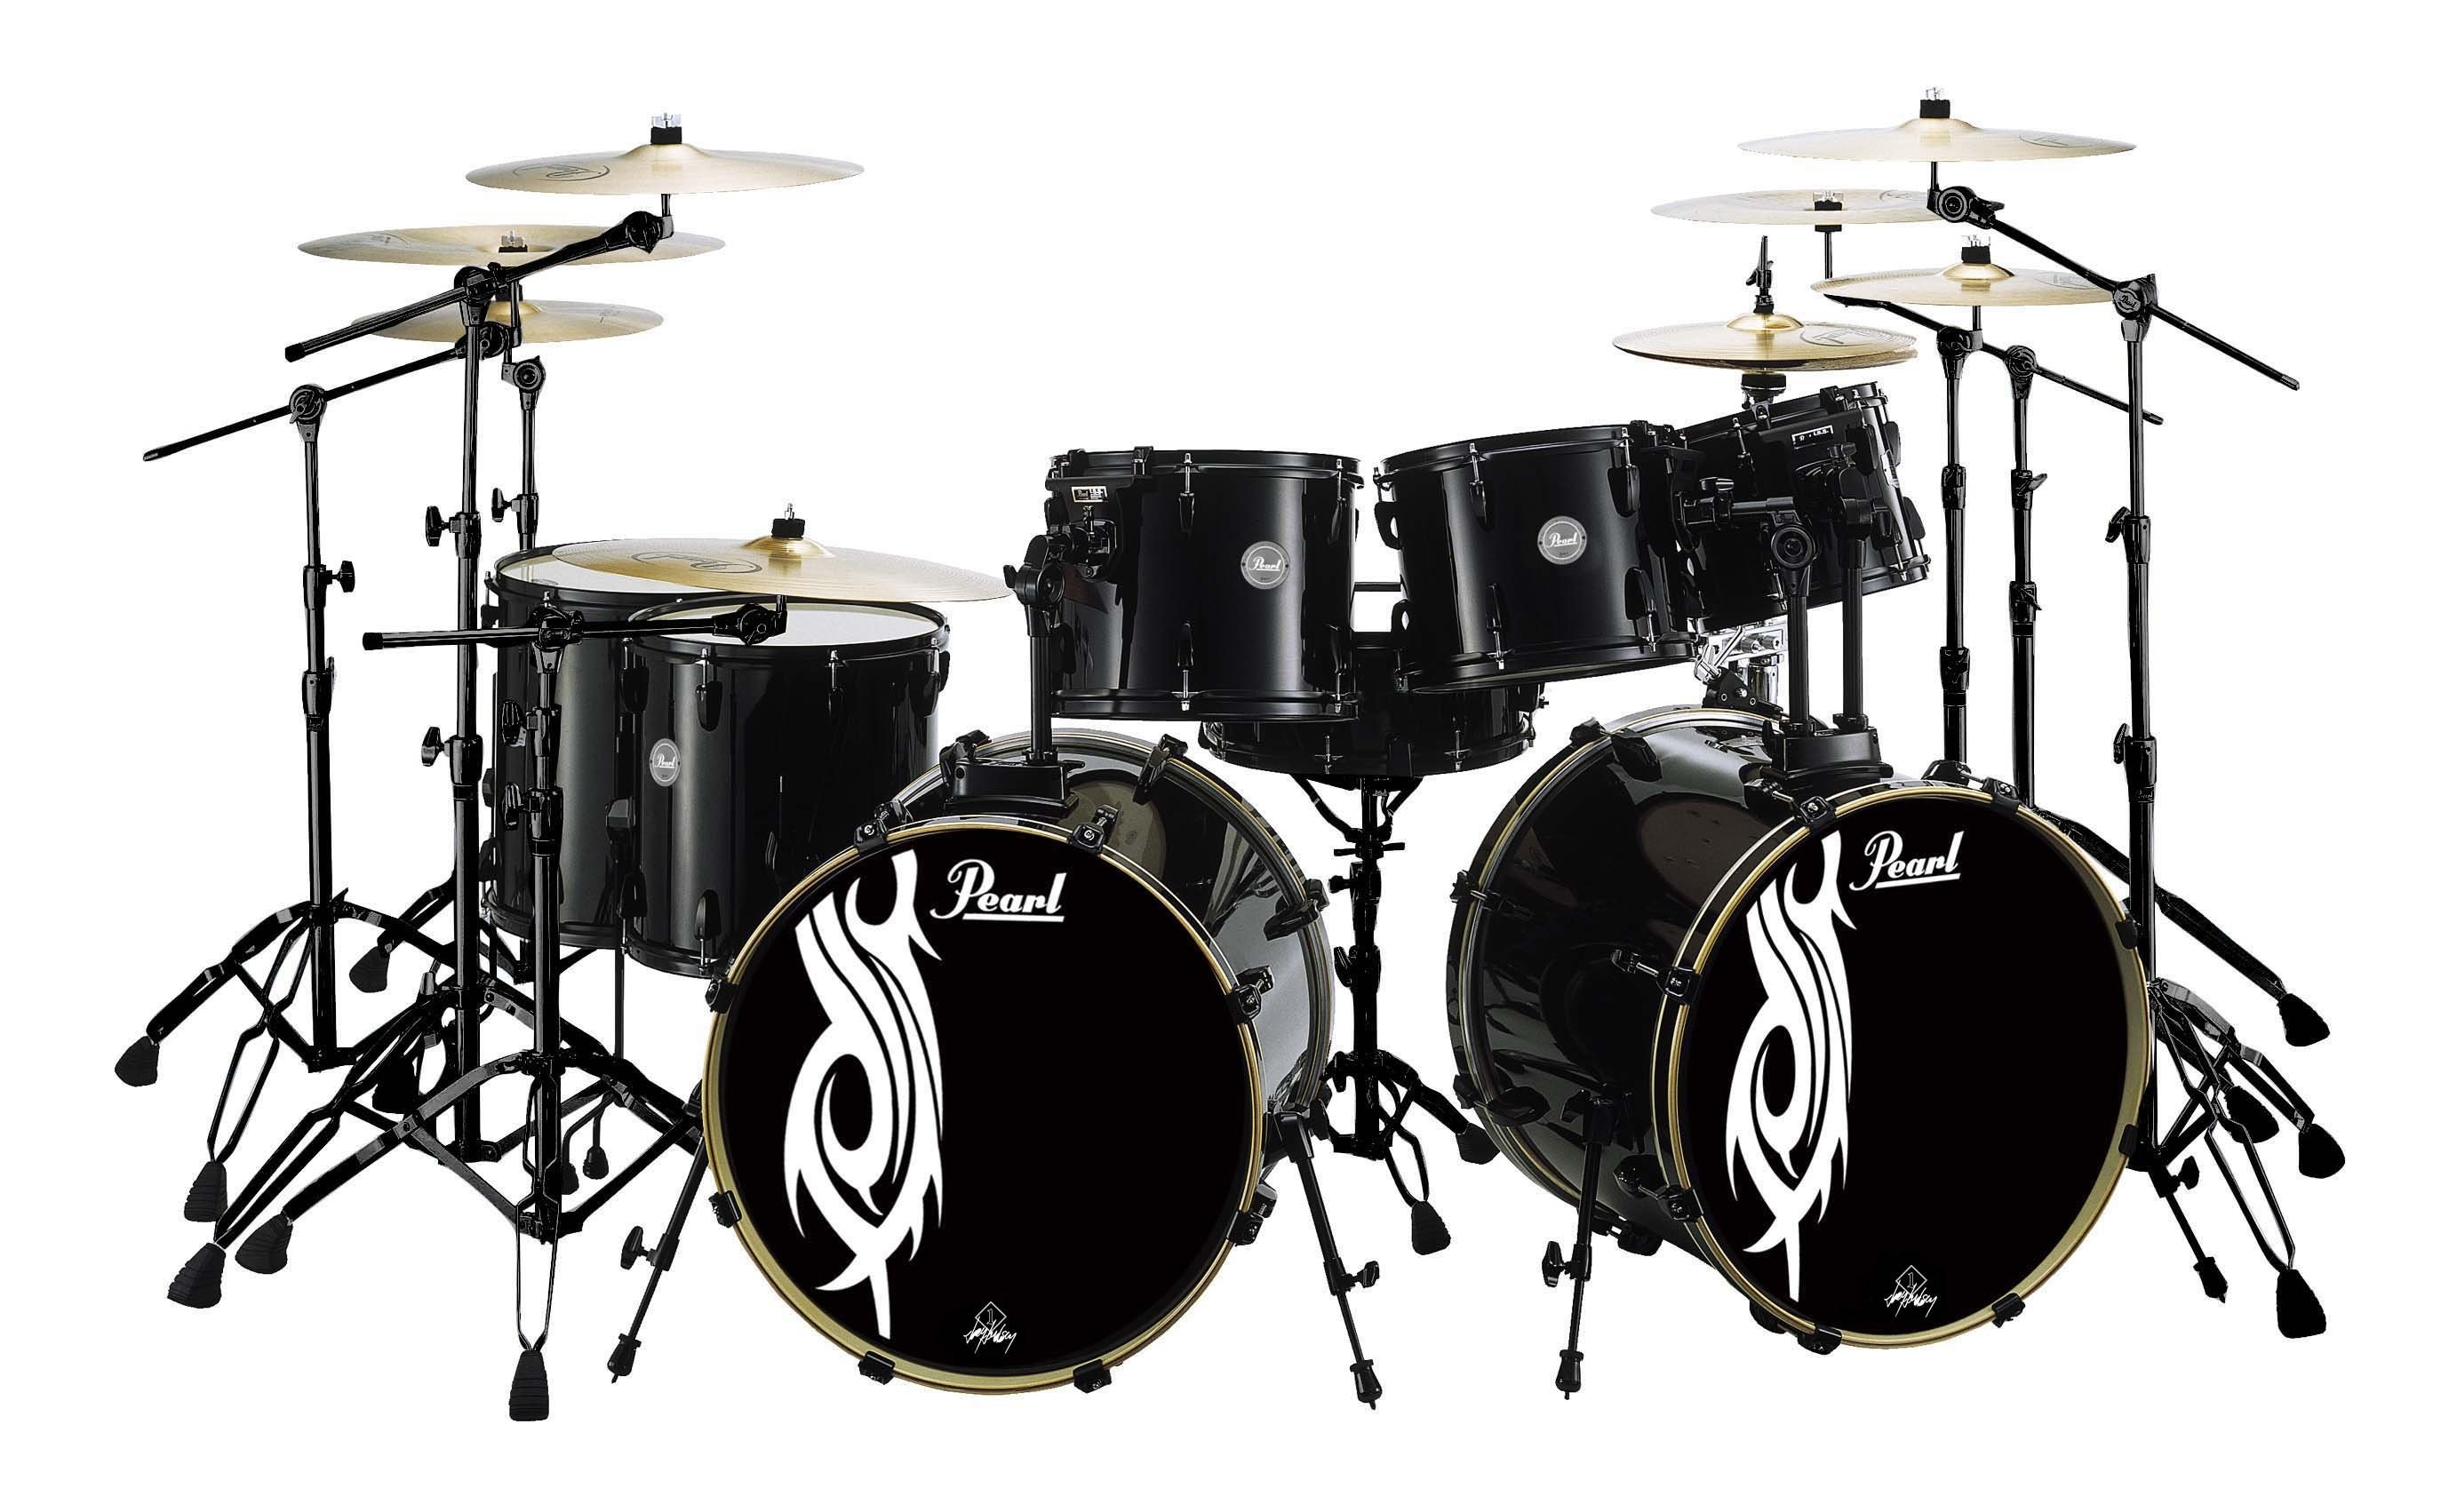 Res: 2756x1702, Musical-instruments-drum-kit